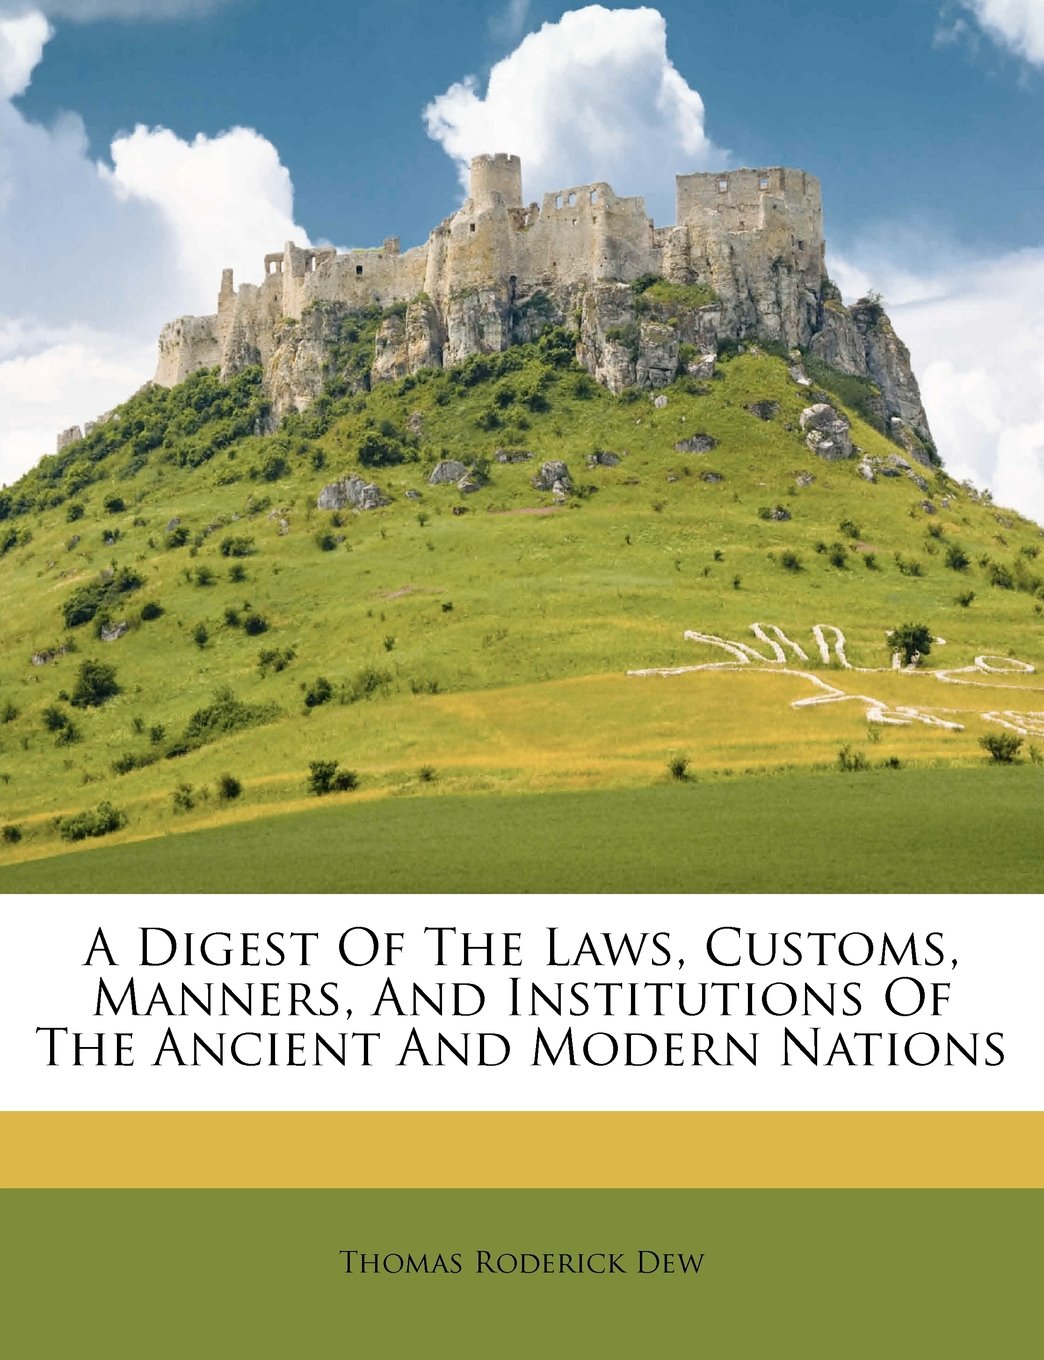 Download A Digest Of The Laws, Customs, Manners, And Institutions Of The Ancient And Modern Nations PDF